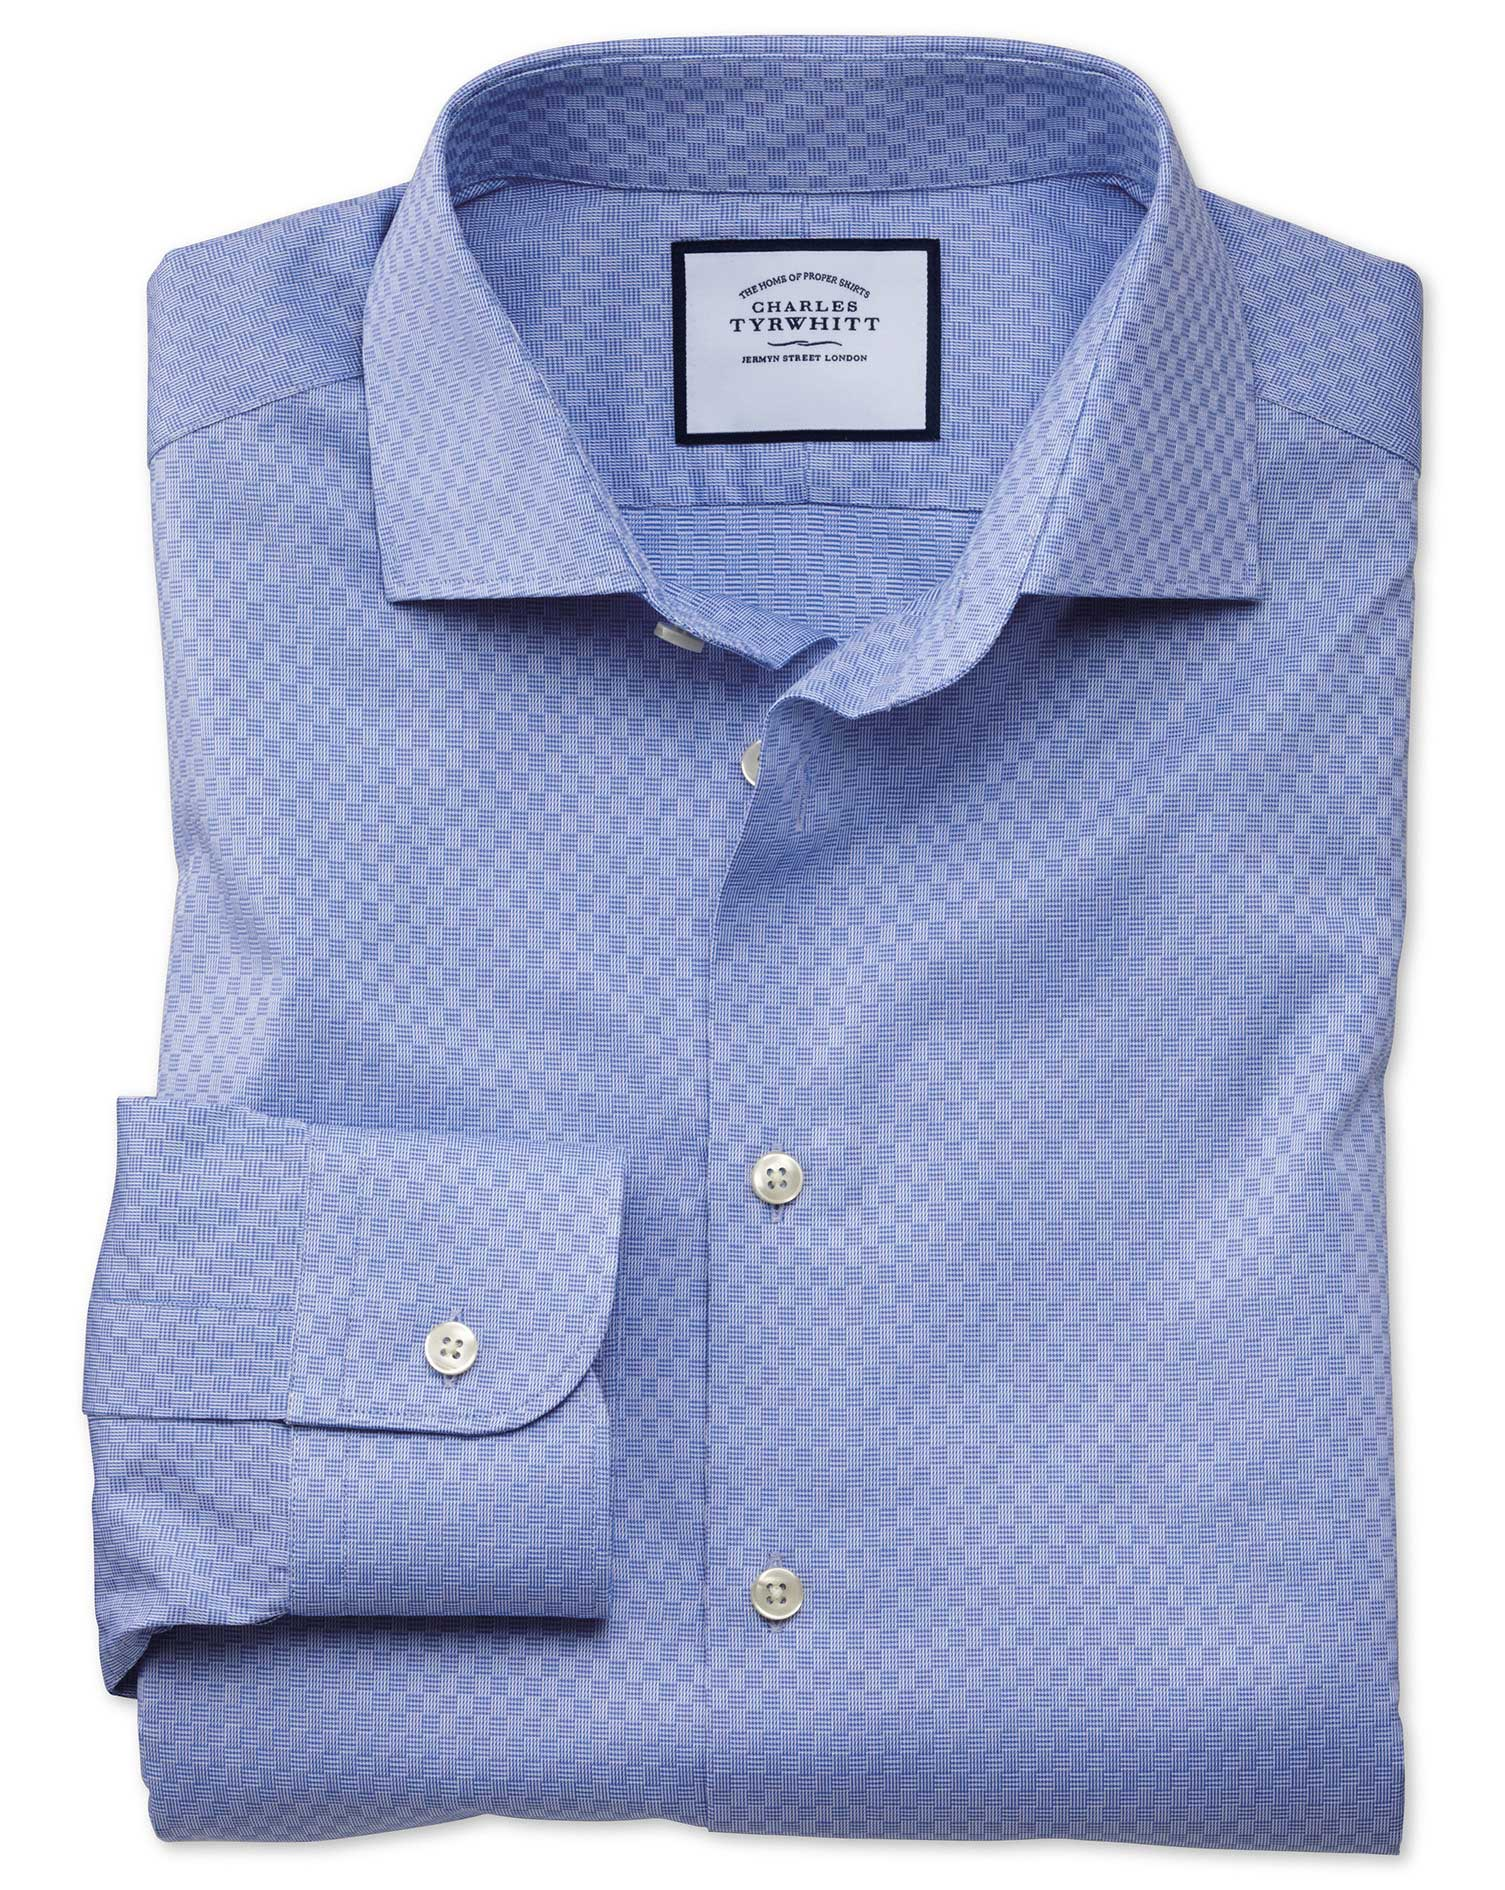 Slim Fit Business Casual Mid-Blue Square Pattern Egyptian Cotton Formal Shirt Single Cuff Size 18/37